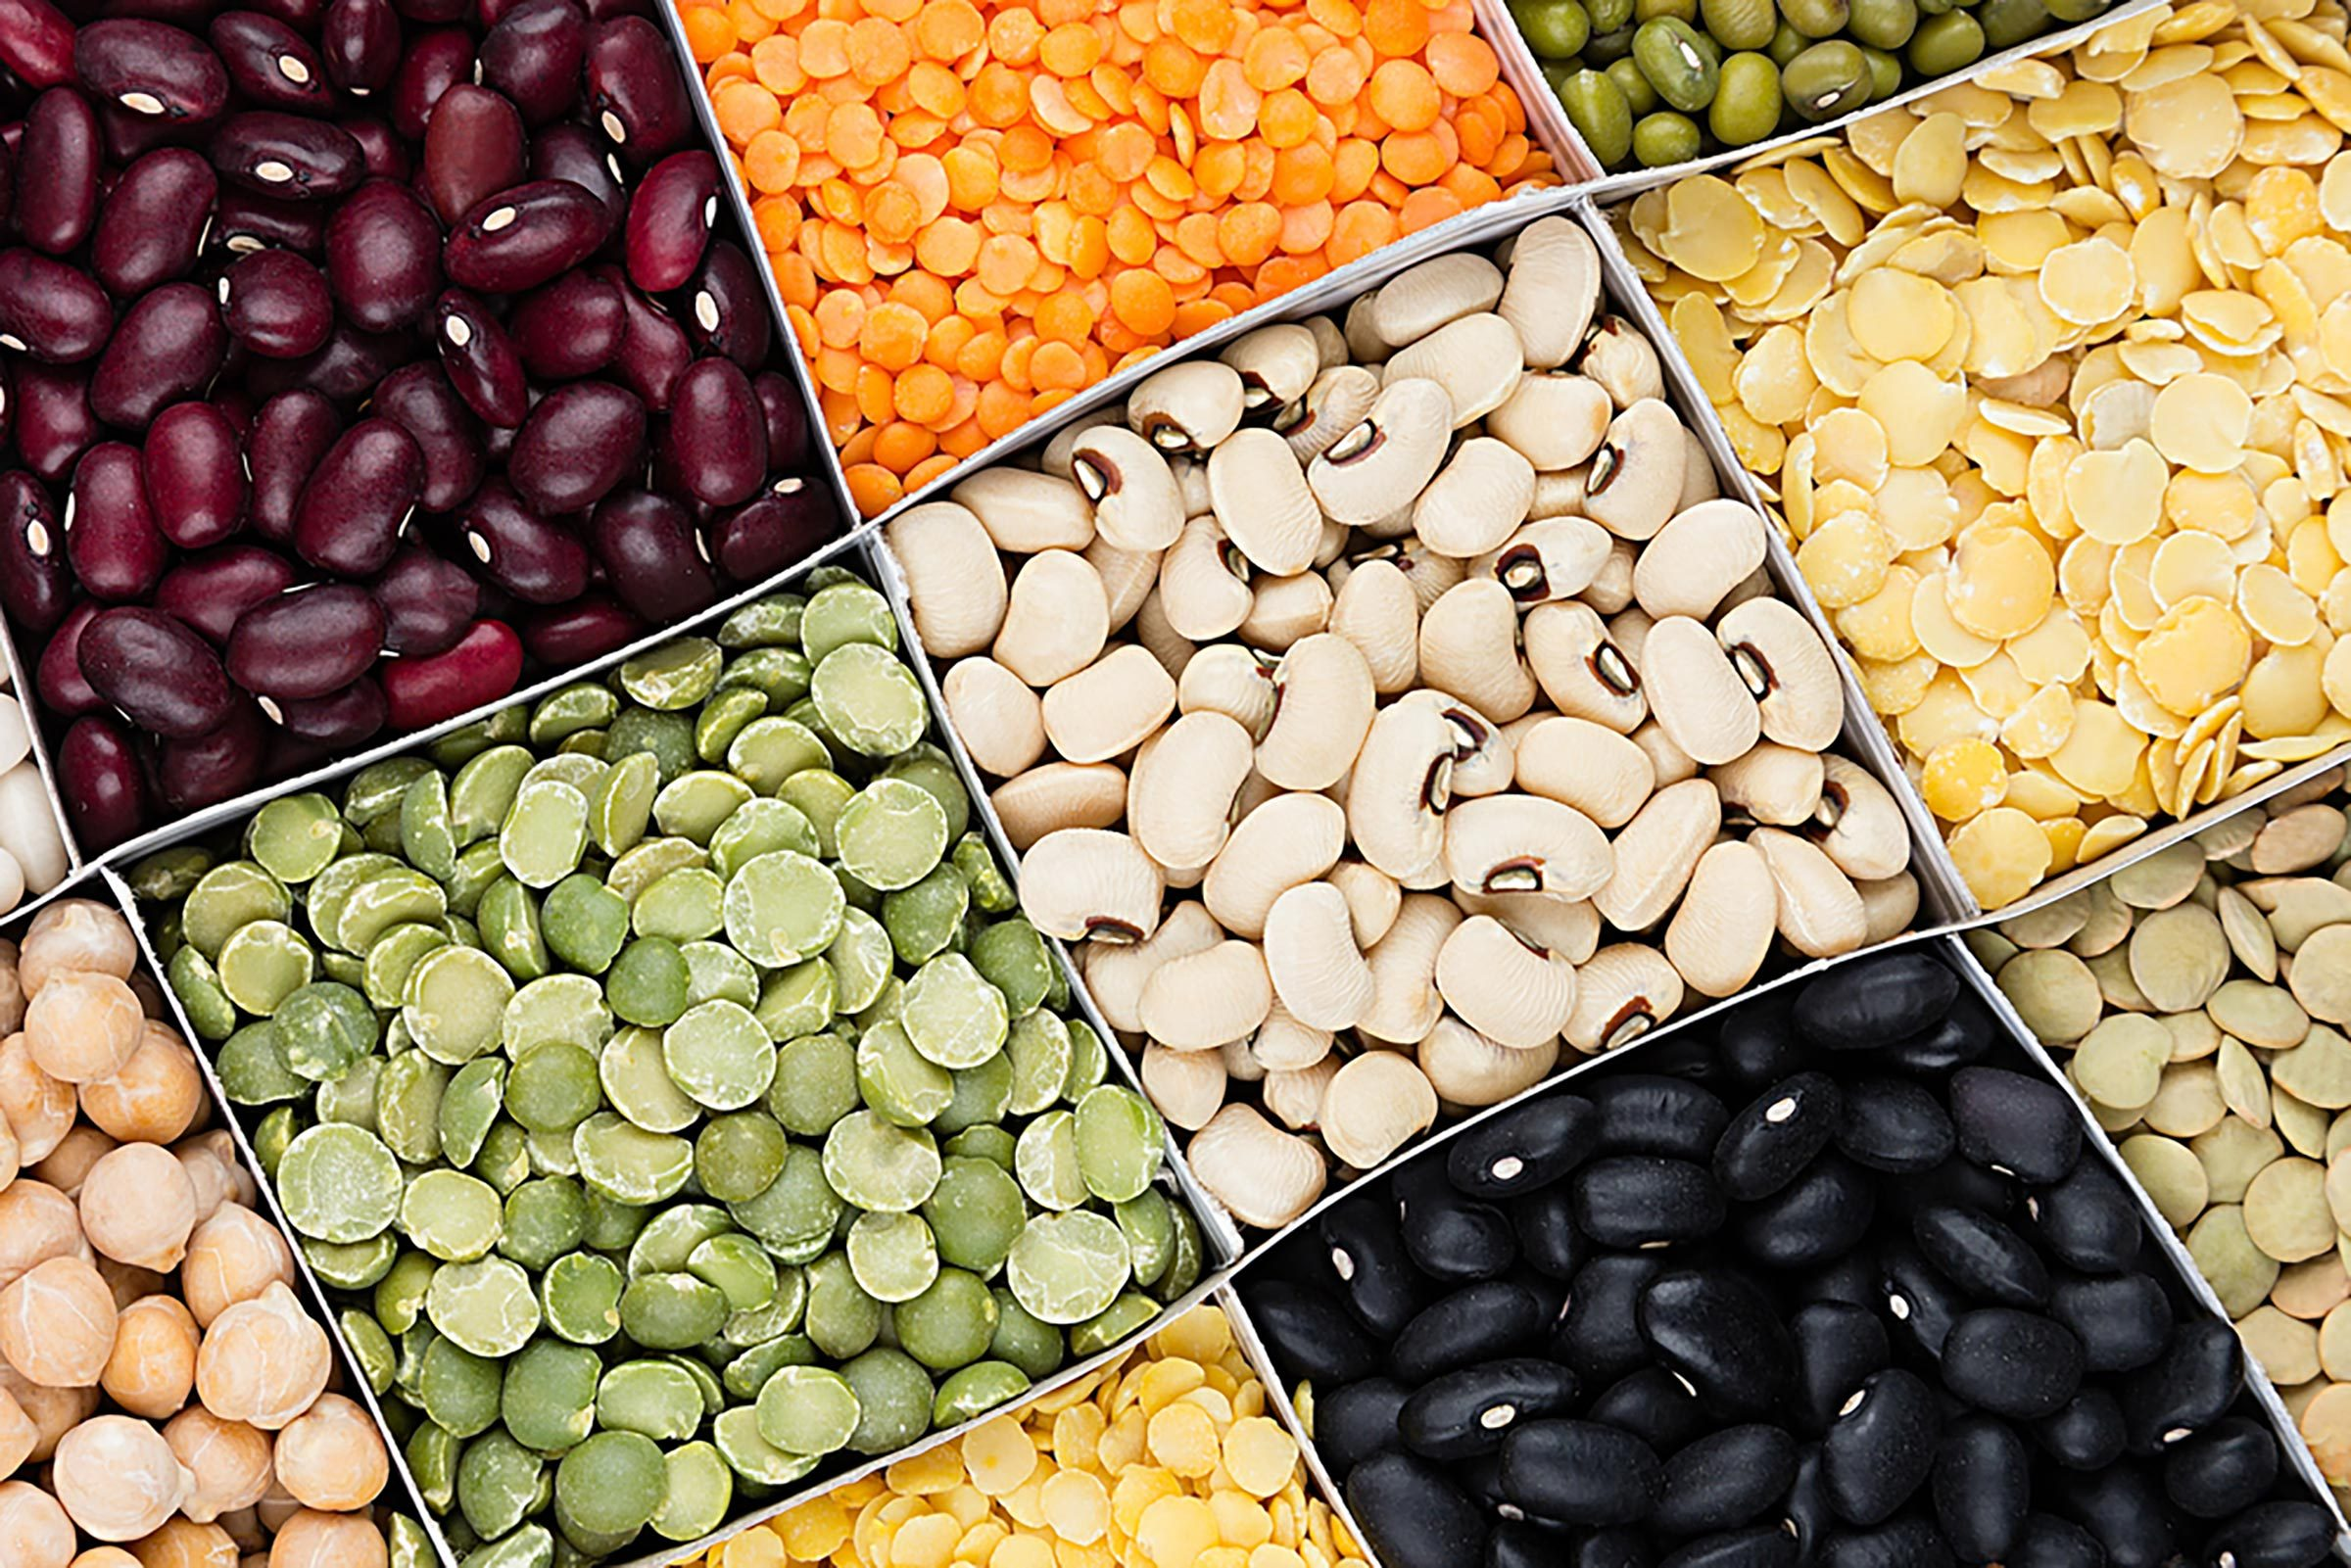 beans, peas and lentils, pulses